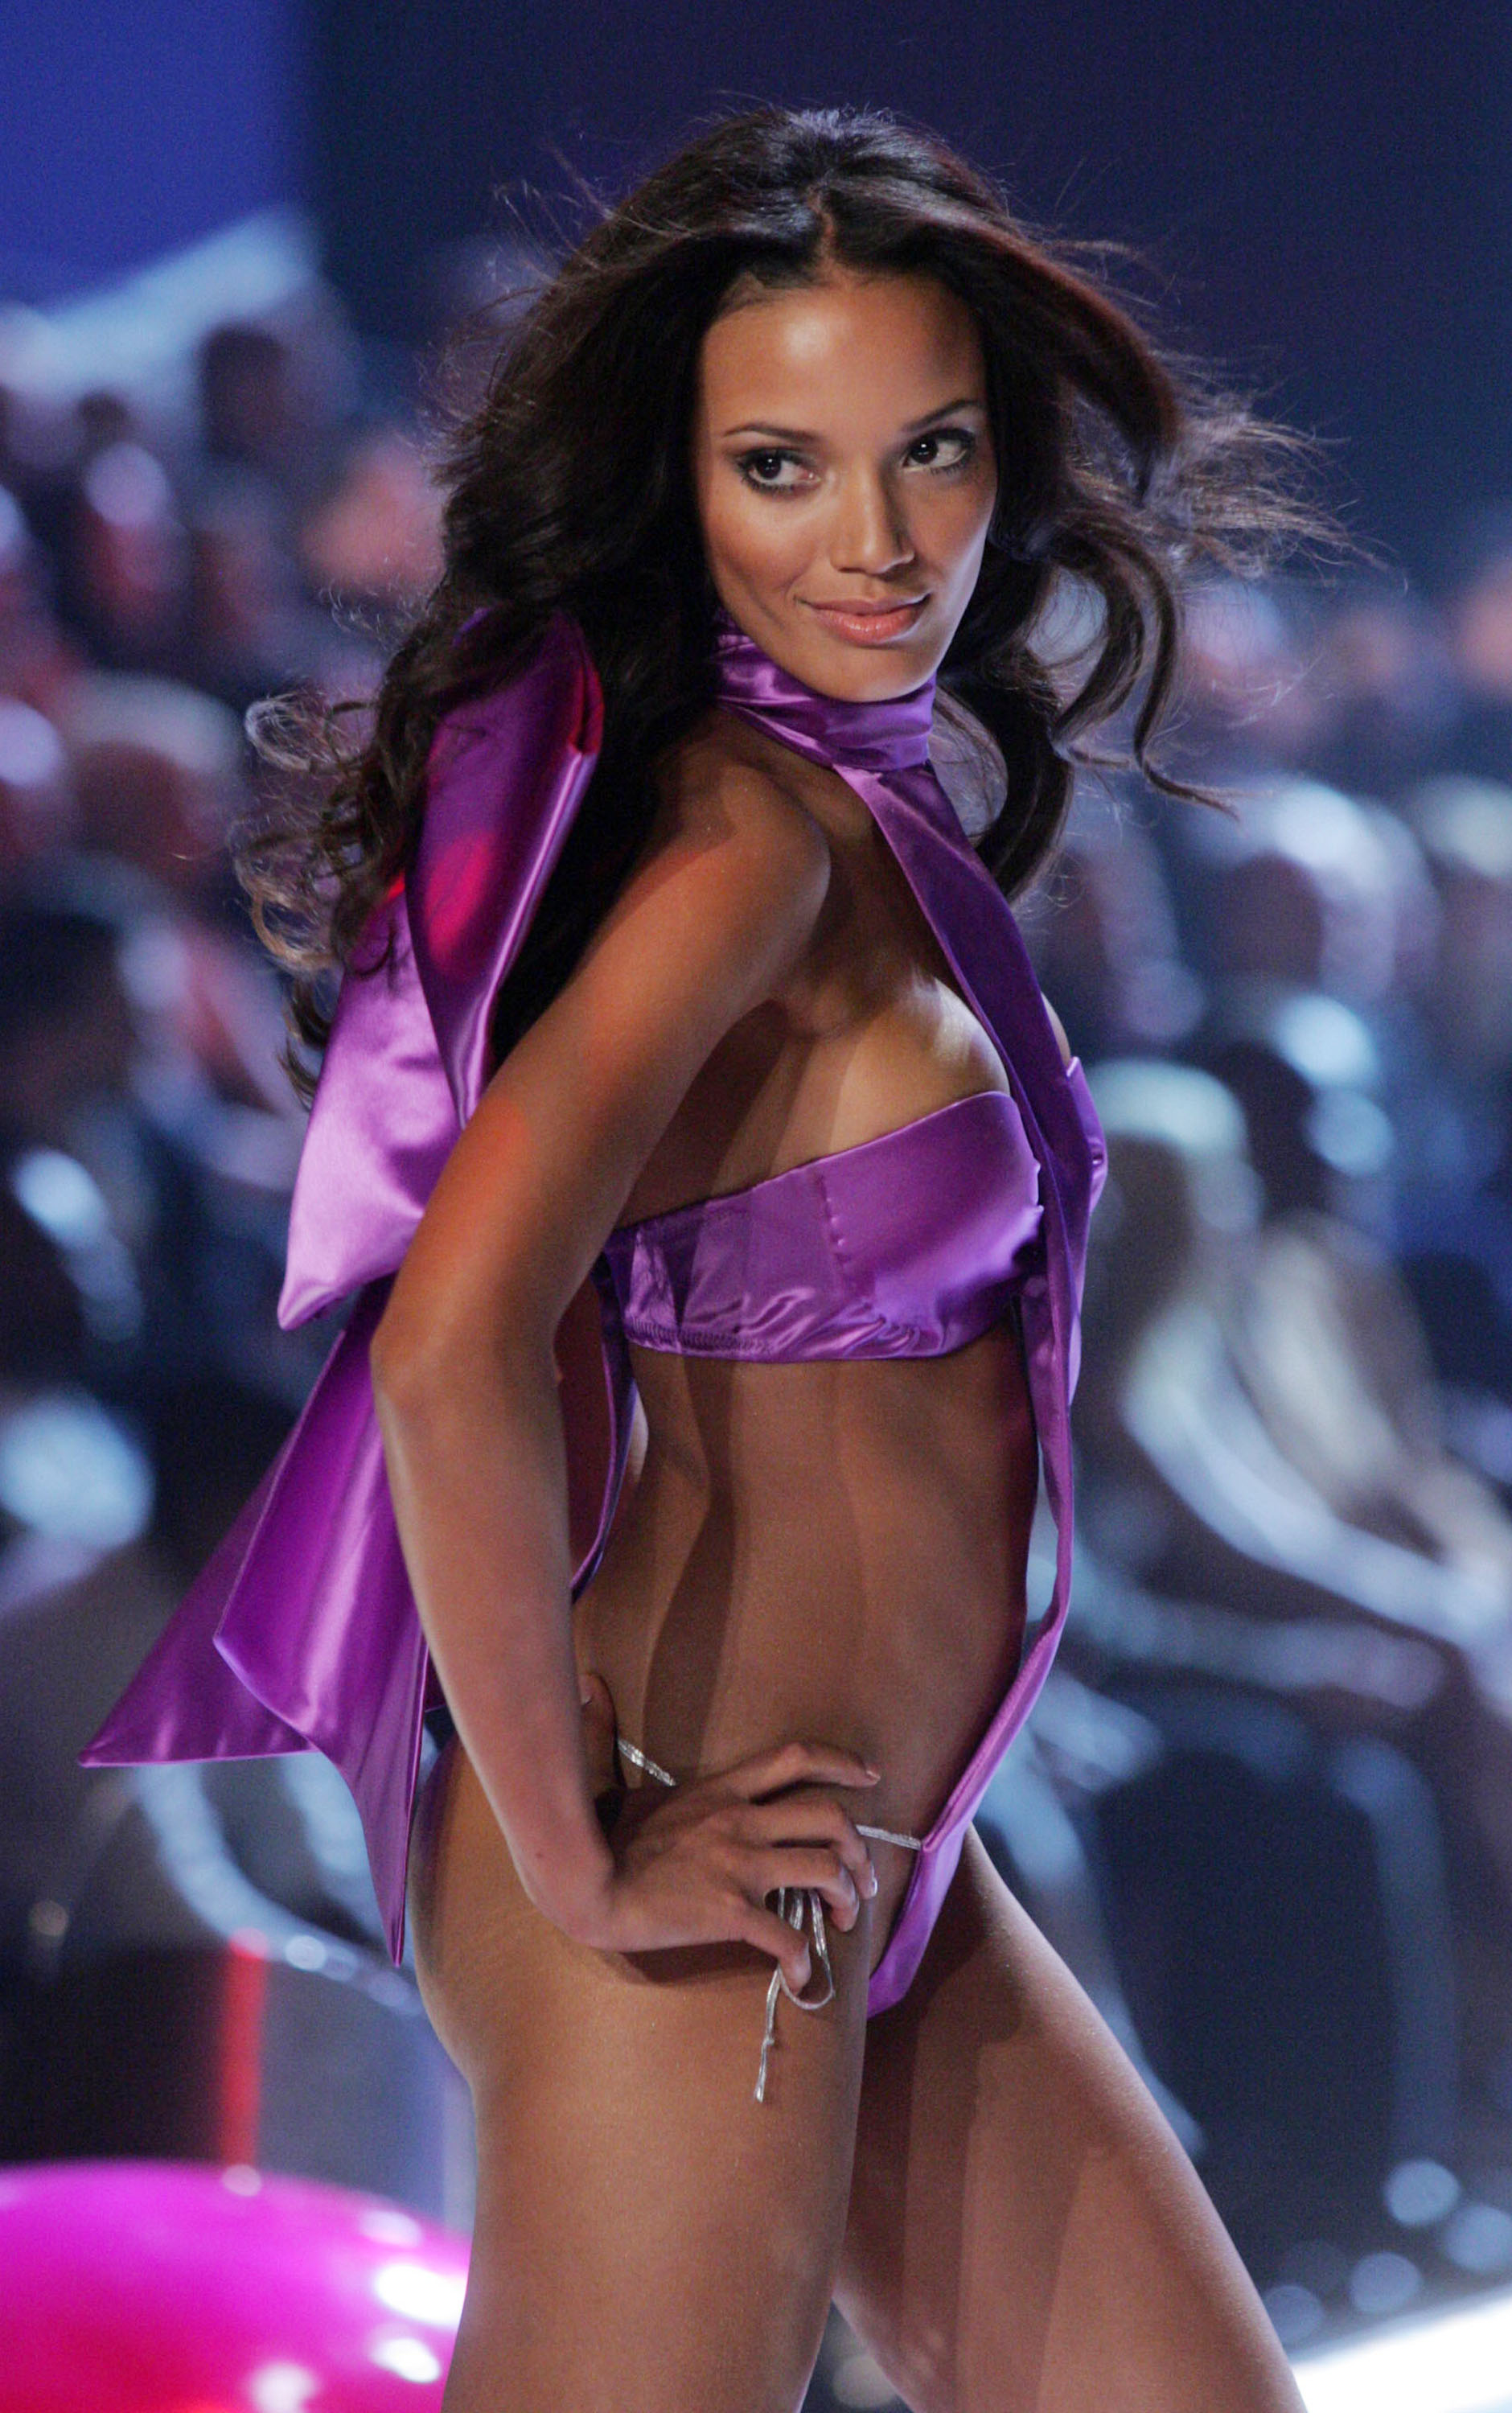 Selita_Ebanks_Victoria%27s_Secret_Fashion_Show_11-09-2005_05.jpg